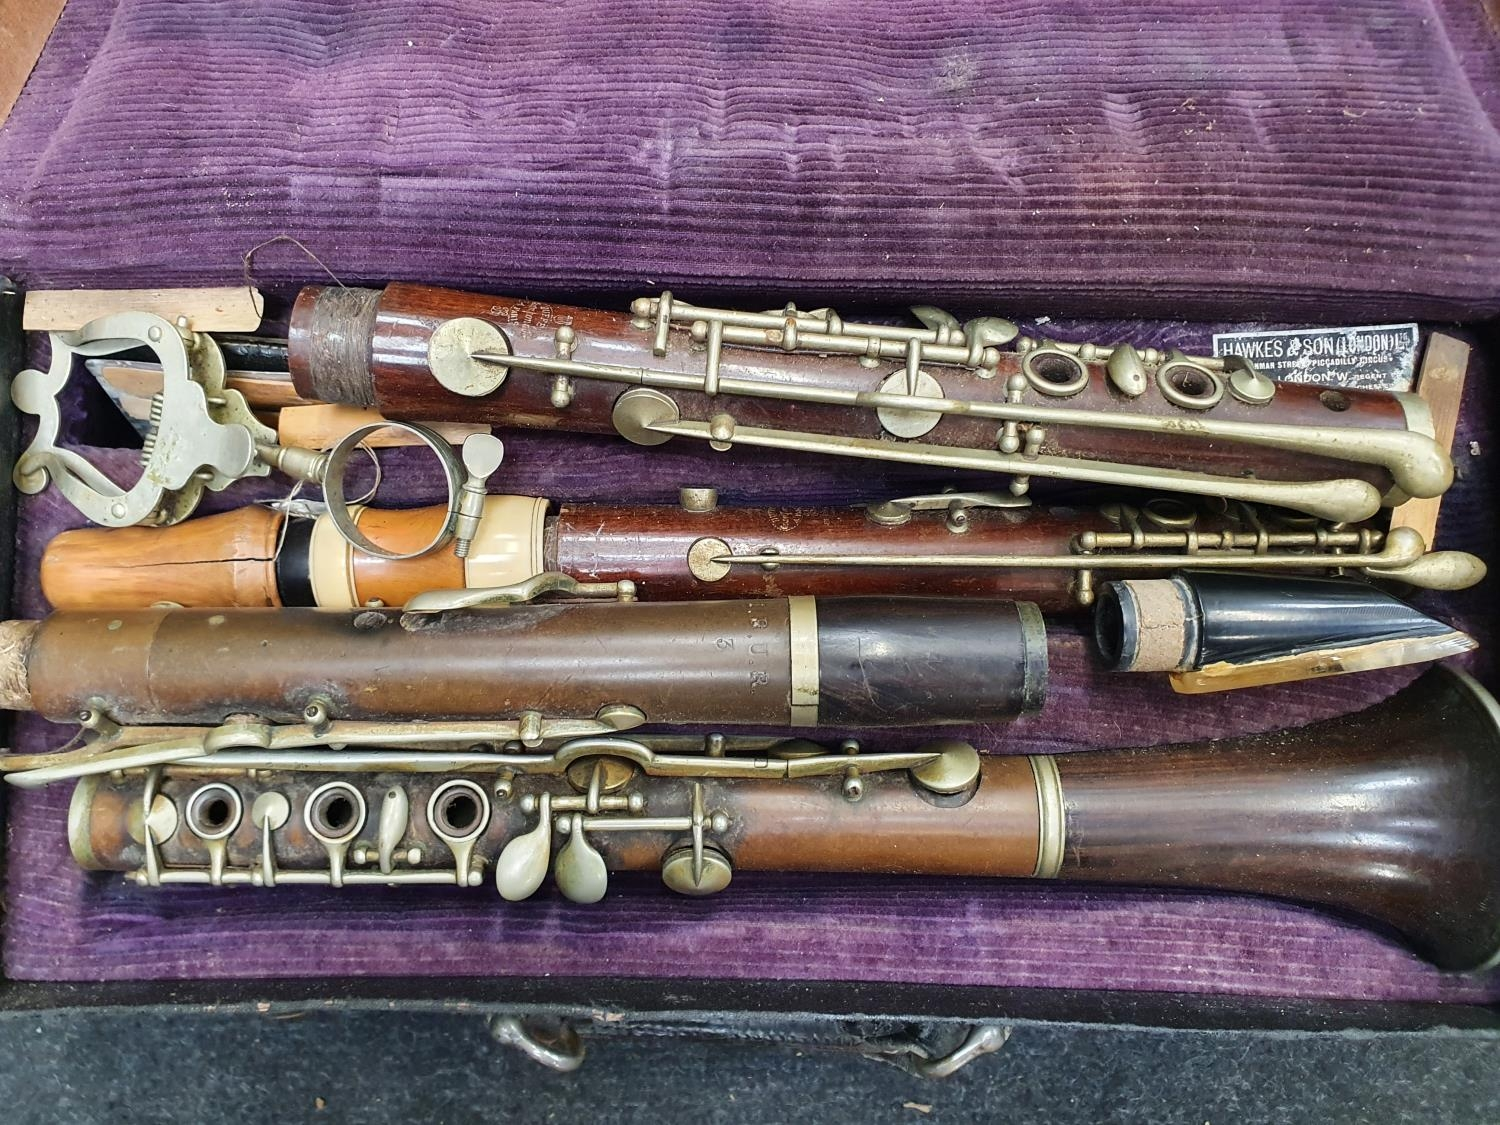 Case of vintage clarinets. - Image 2 of 6